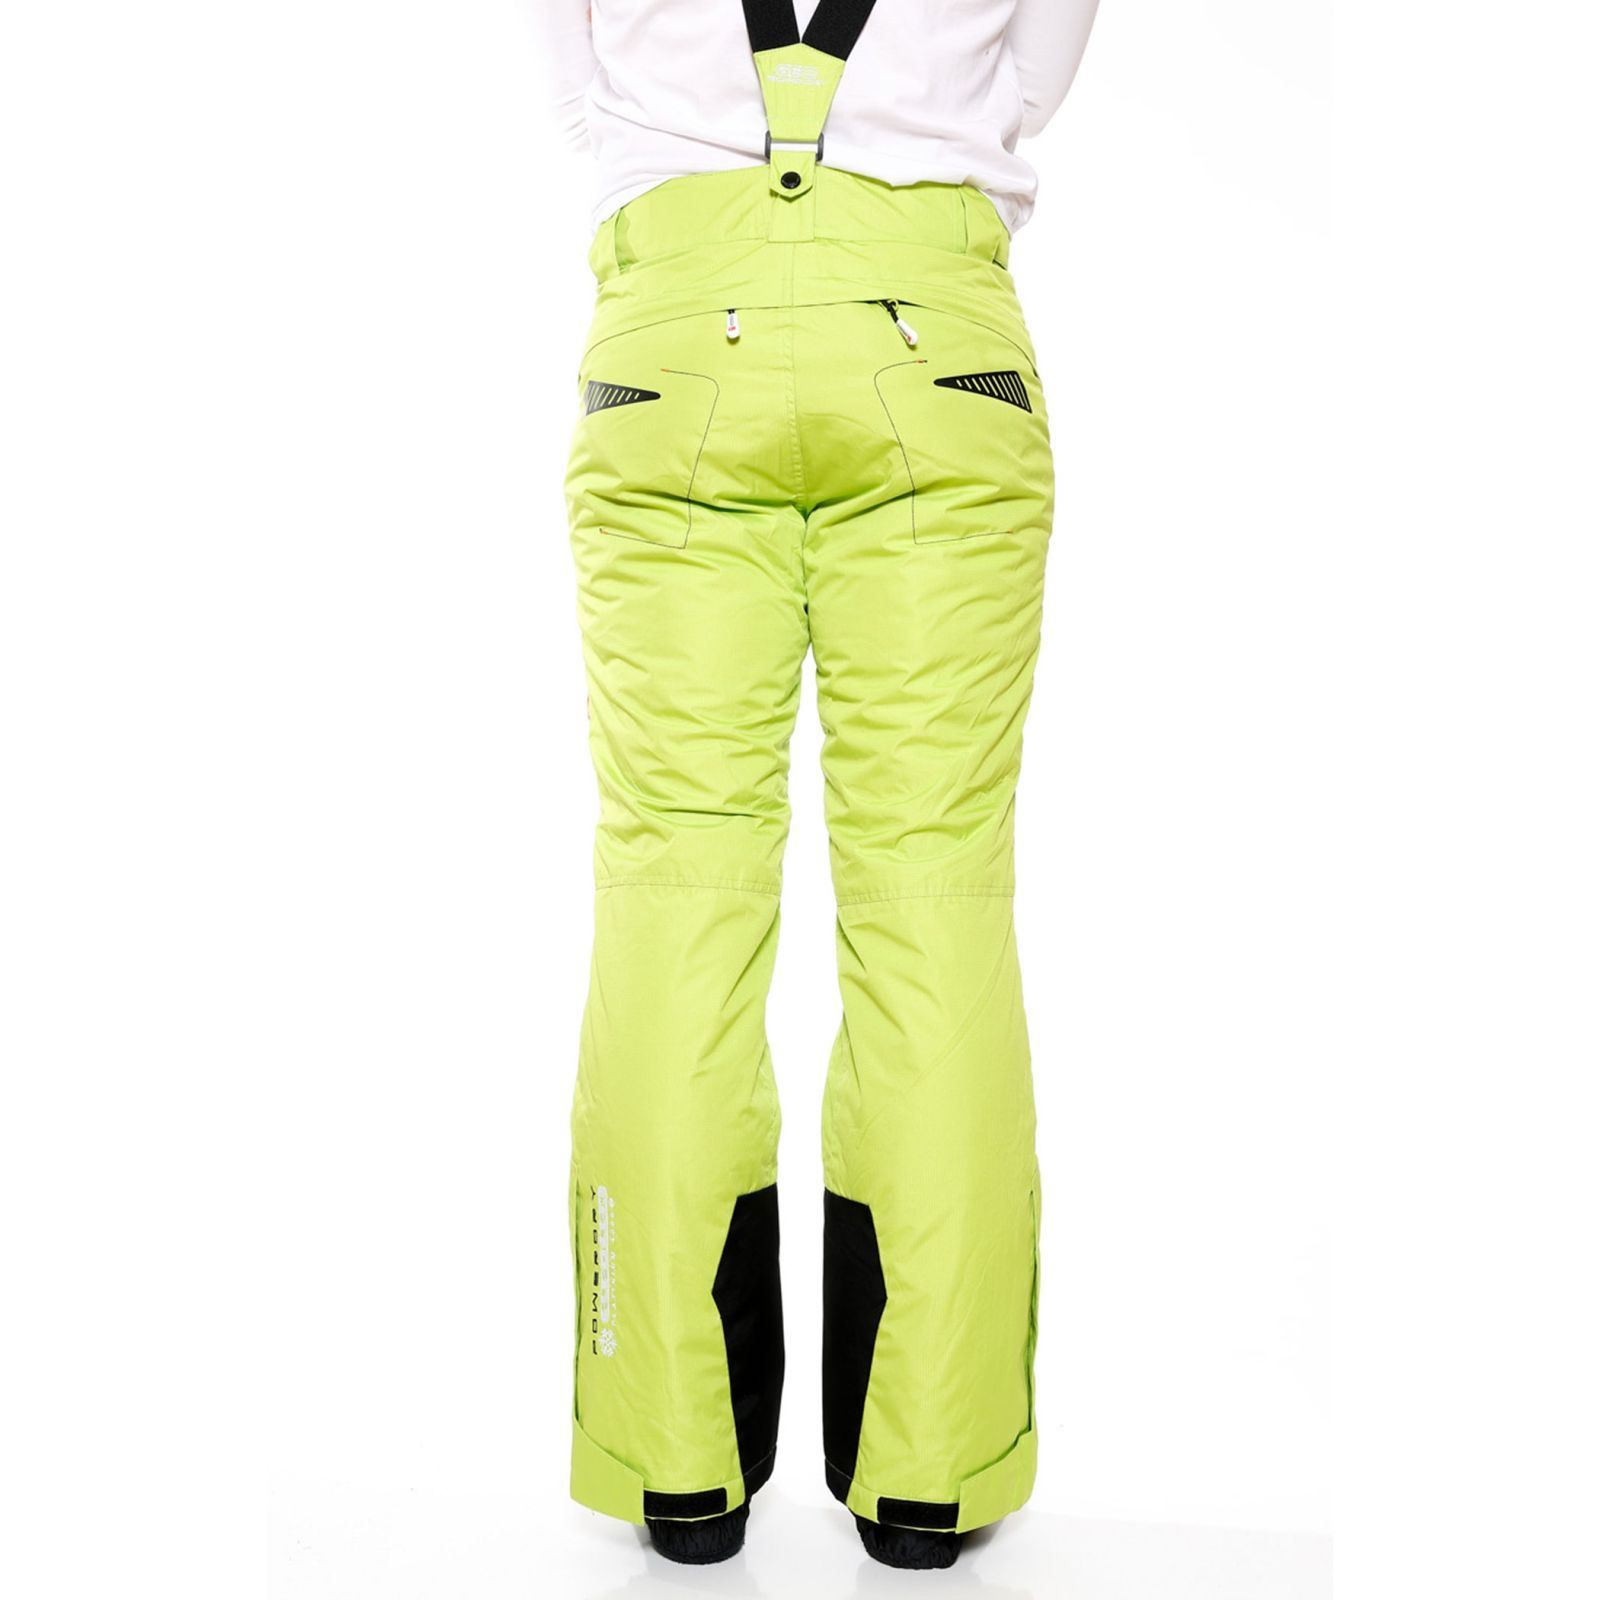 geographical norway walkman pantalon de ski vert. Black Bedroom Furniture Sets. Home Design Ideas